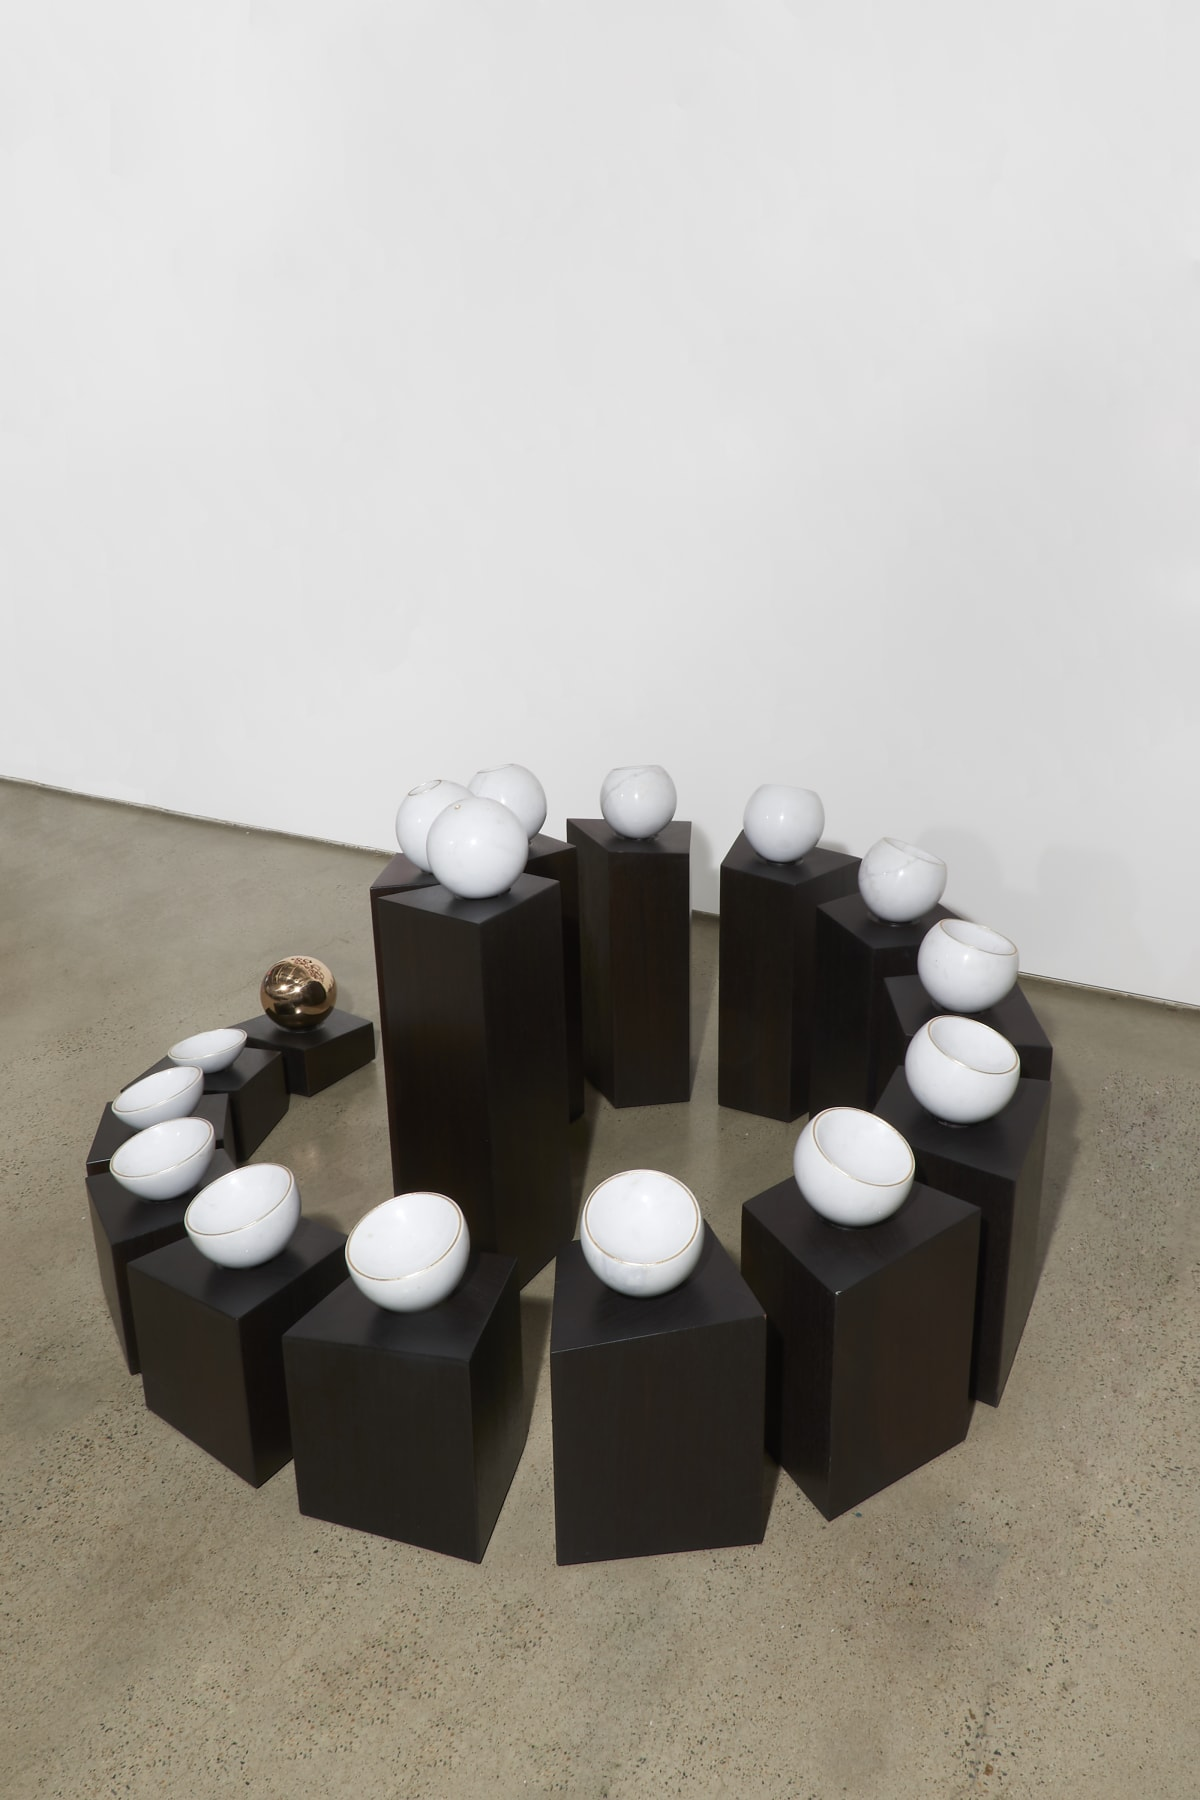 Marion Borgelt Tsukimi Variation: No. 1, 2007-08 empress white marble, (Chinese black marble or bronze sphere) gold etched rim, recycled red ironbark plinths 85 x 146 x 180 cm